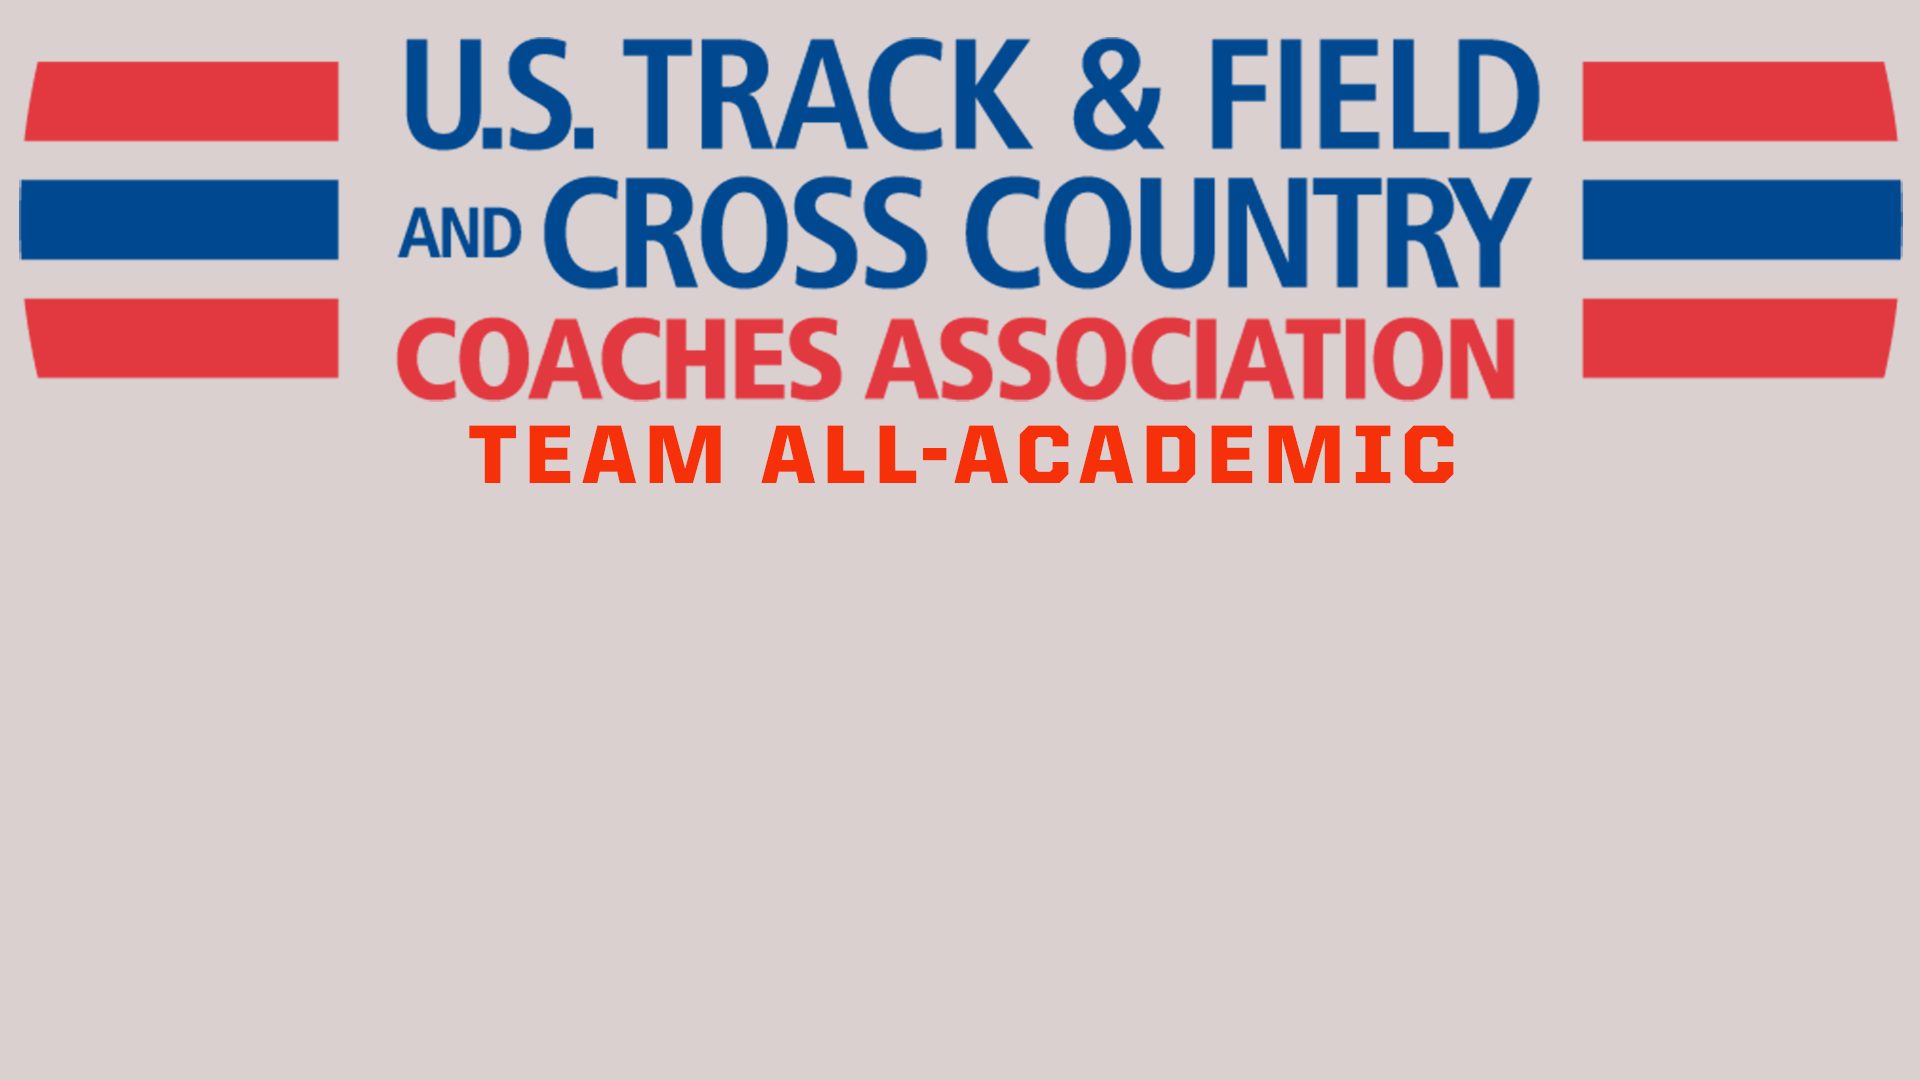 Goucher Men's And Women's Track And Field Squads Selected To The USTFCCCA All-Academic Teams